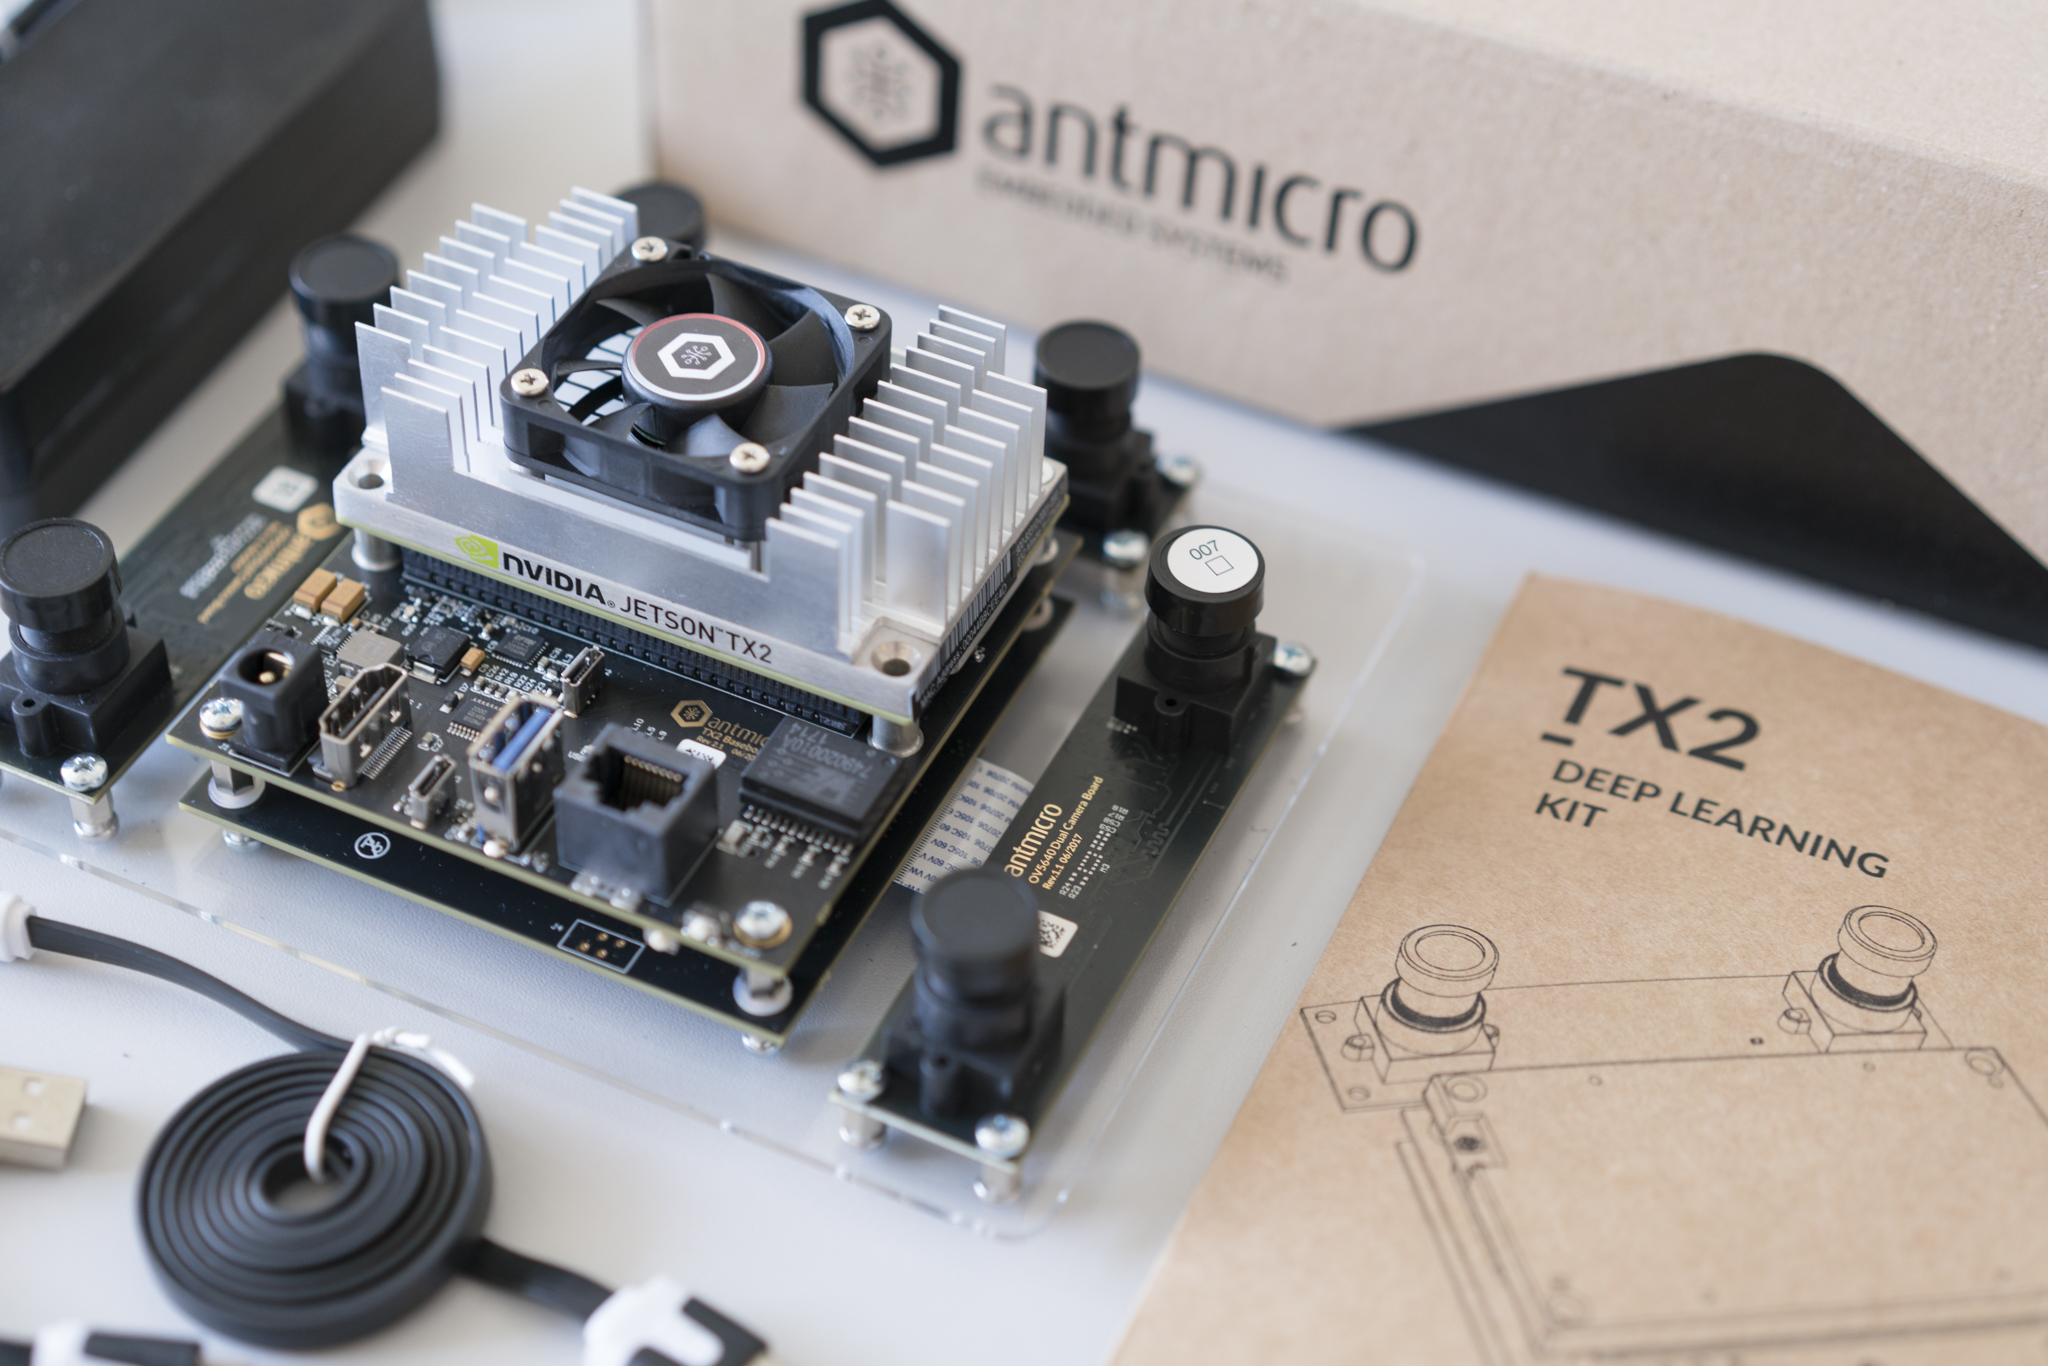 Antmicro TX1/TX2 Deep Learning Kit box